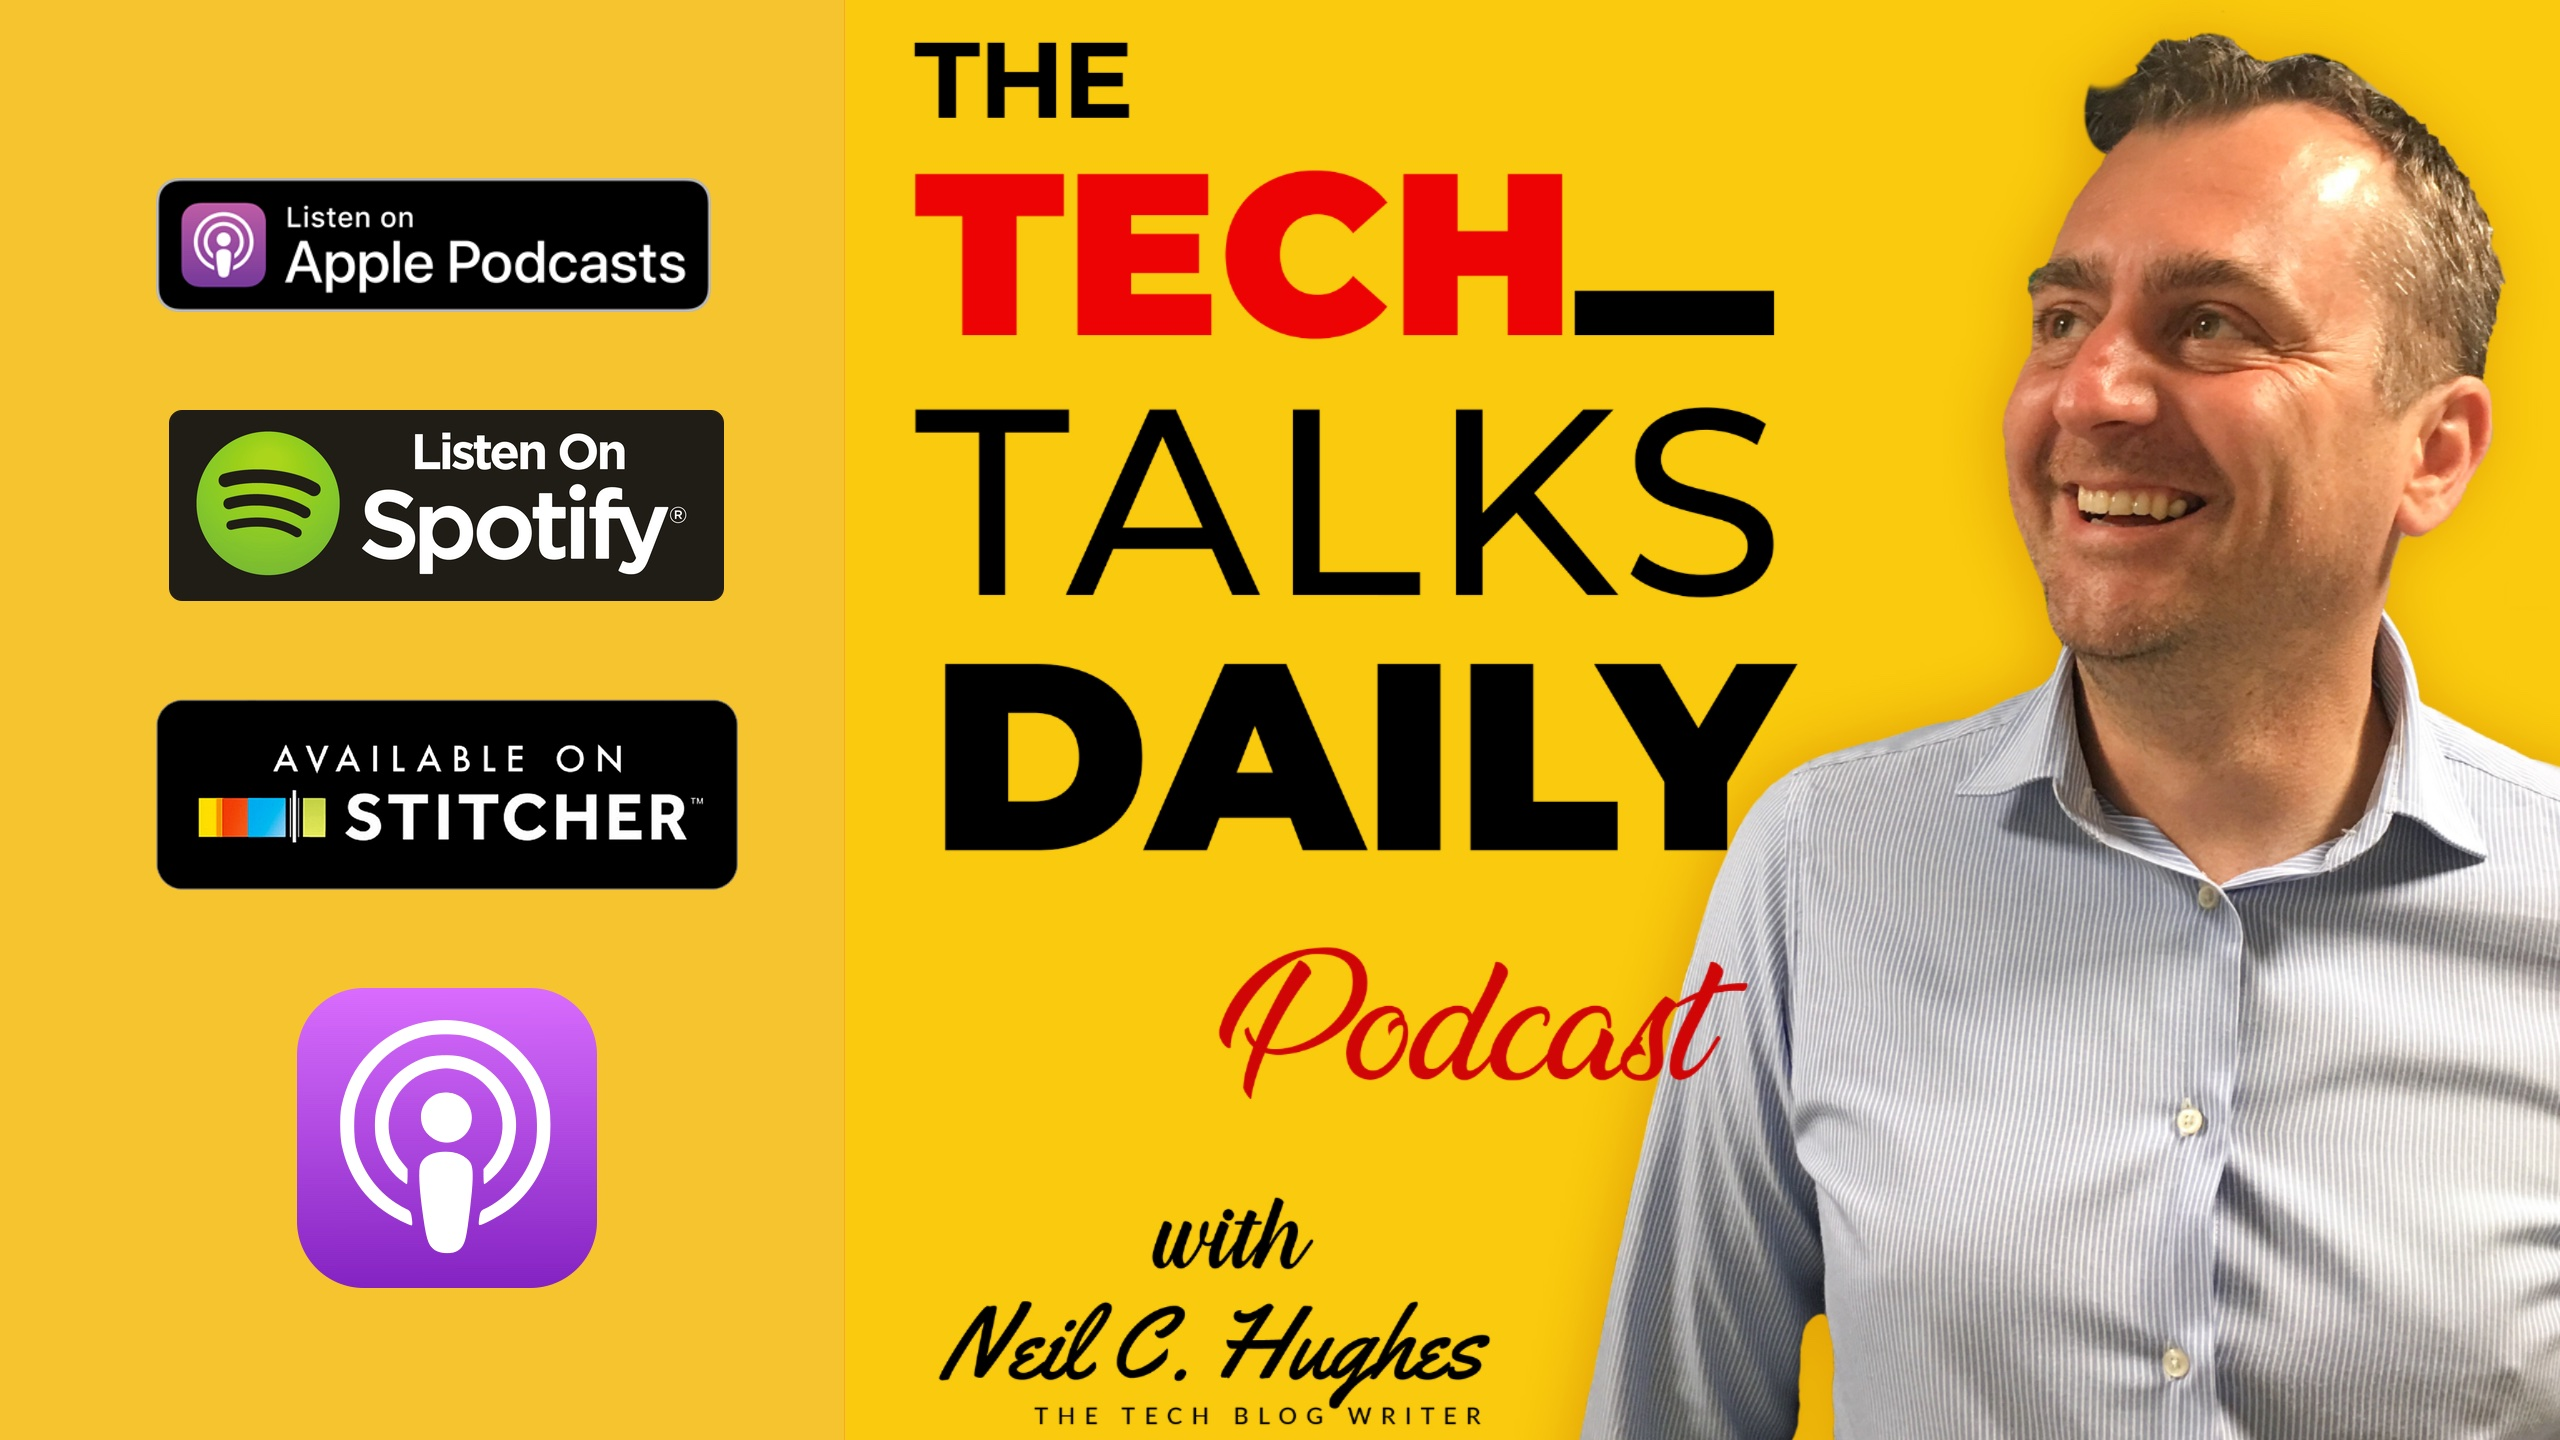 The Tech Blog Writer Podcast Evolves Into The Tech Talks